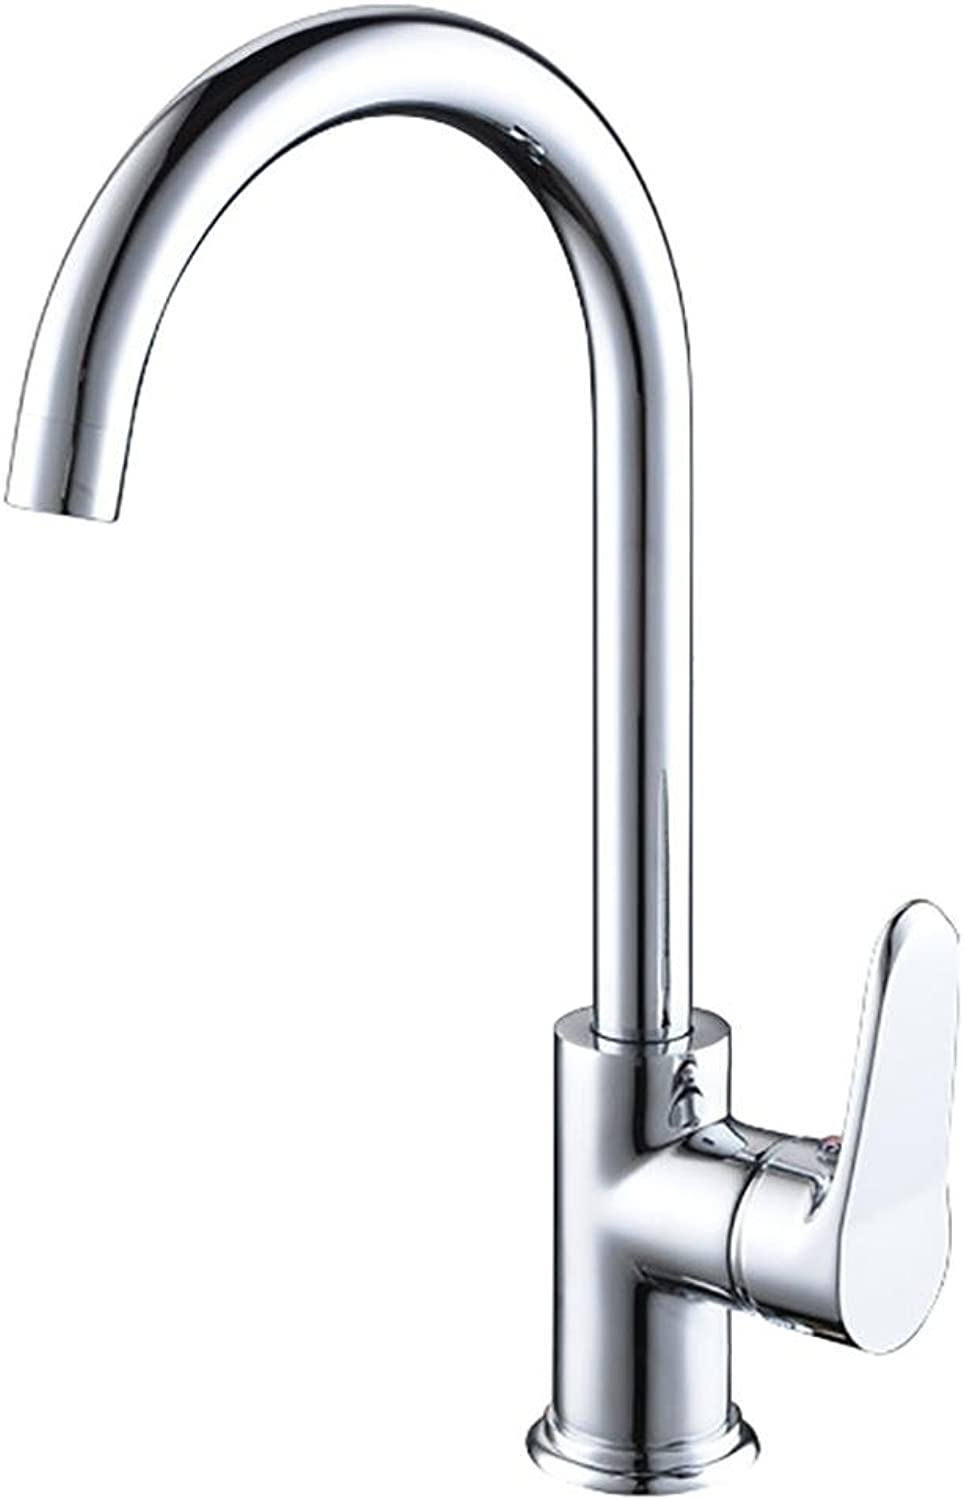 BKPH Sink Tap Modern Copper Monobloc Hot and Cold Mixer Single Handle Single Hole Bathroom Washroom Faucet